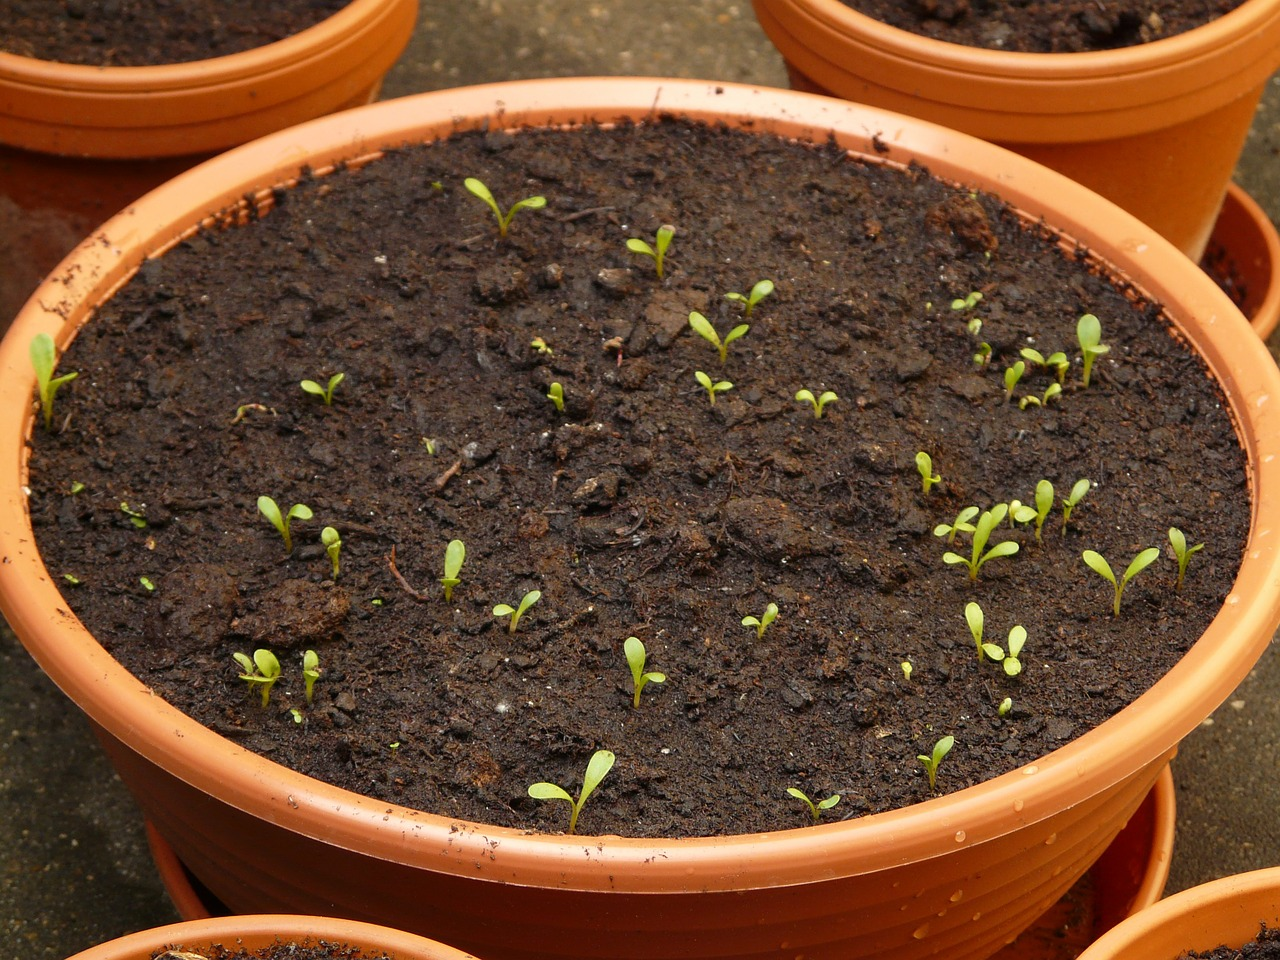 Seedlings From This Years Seed Packets